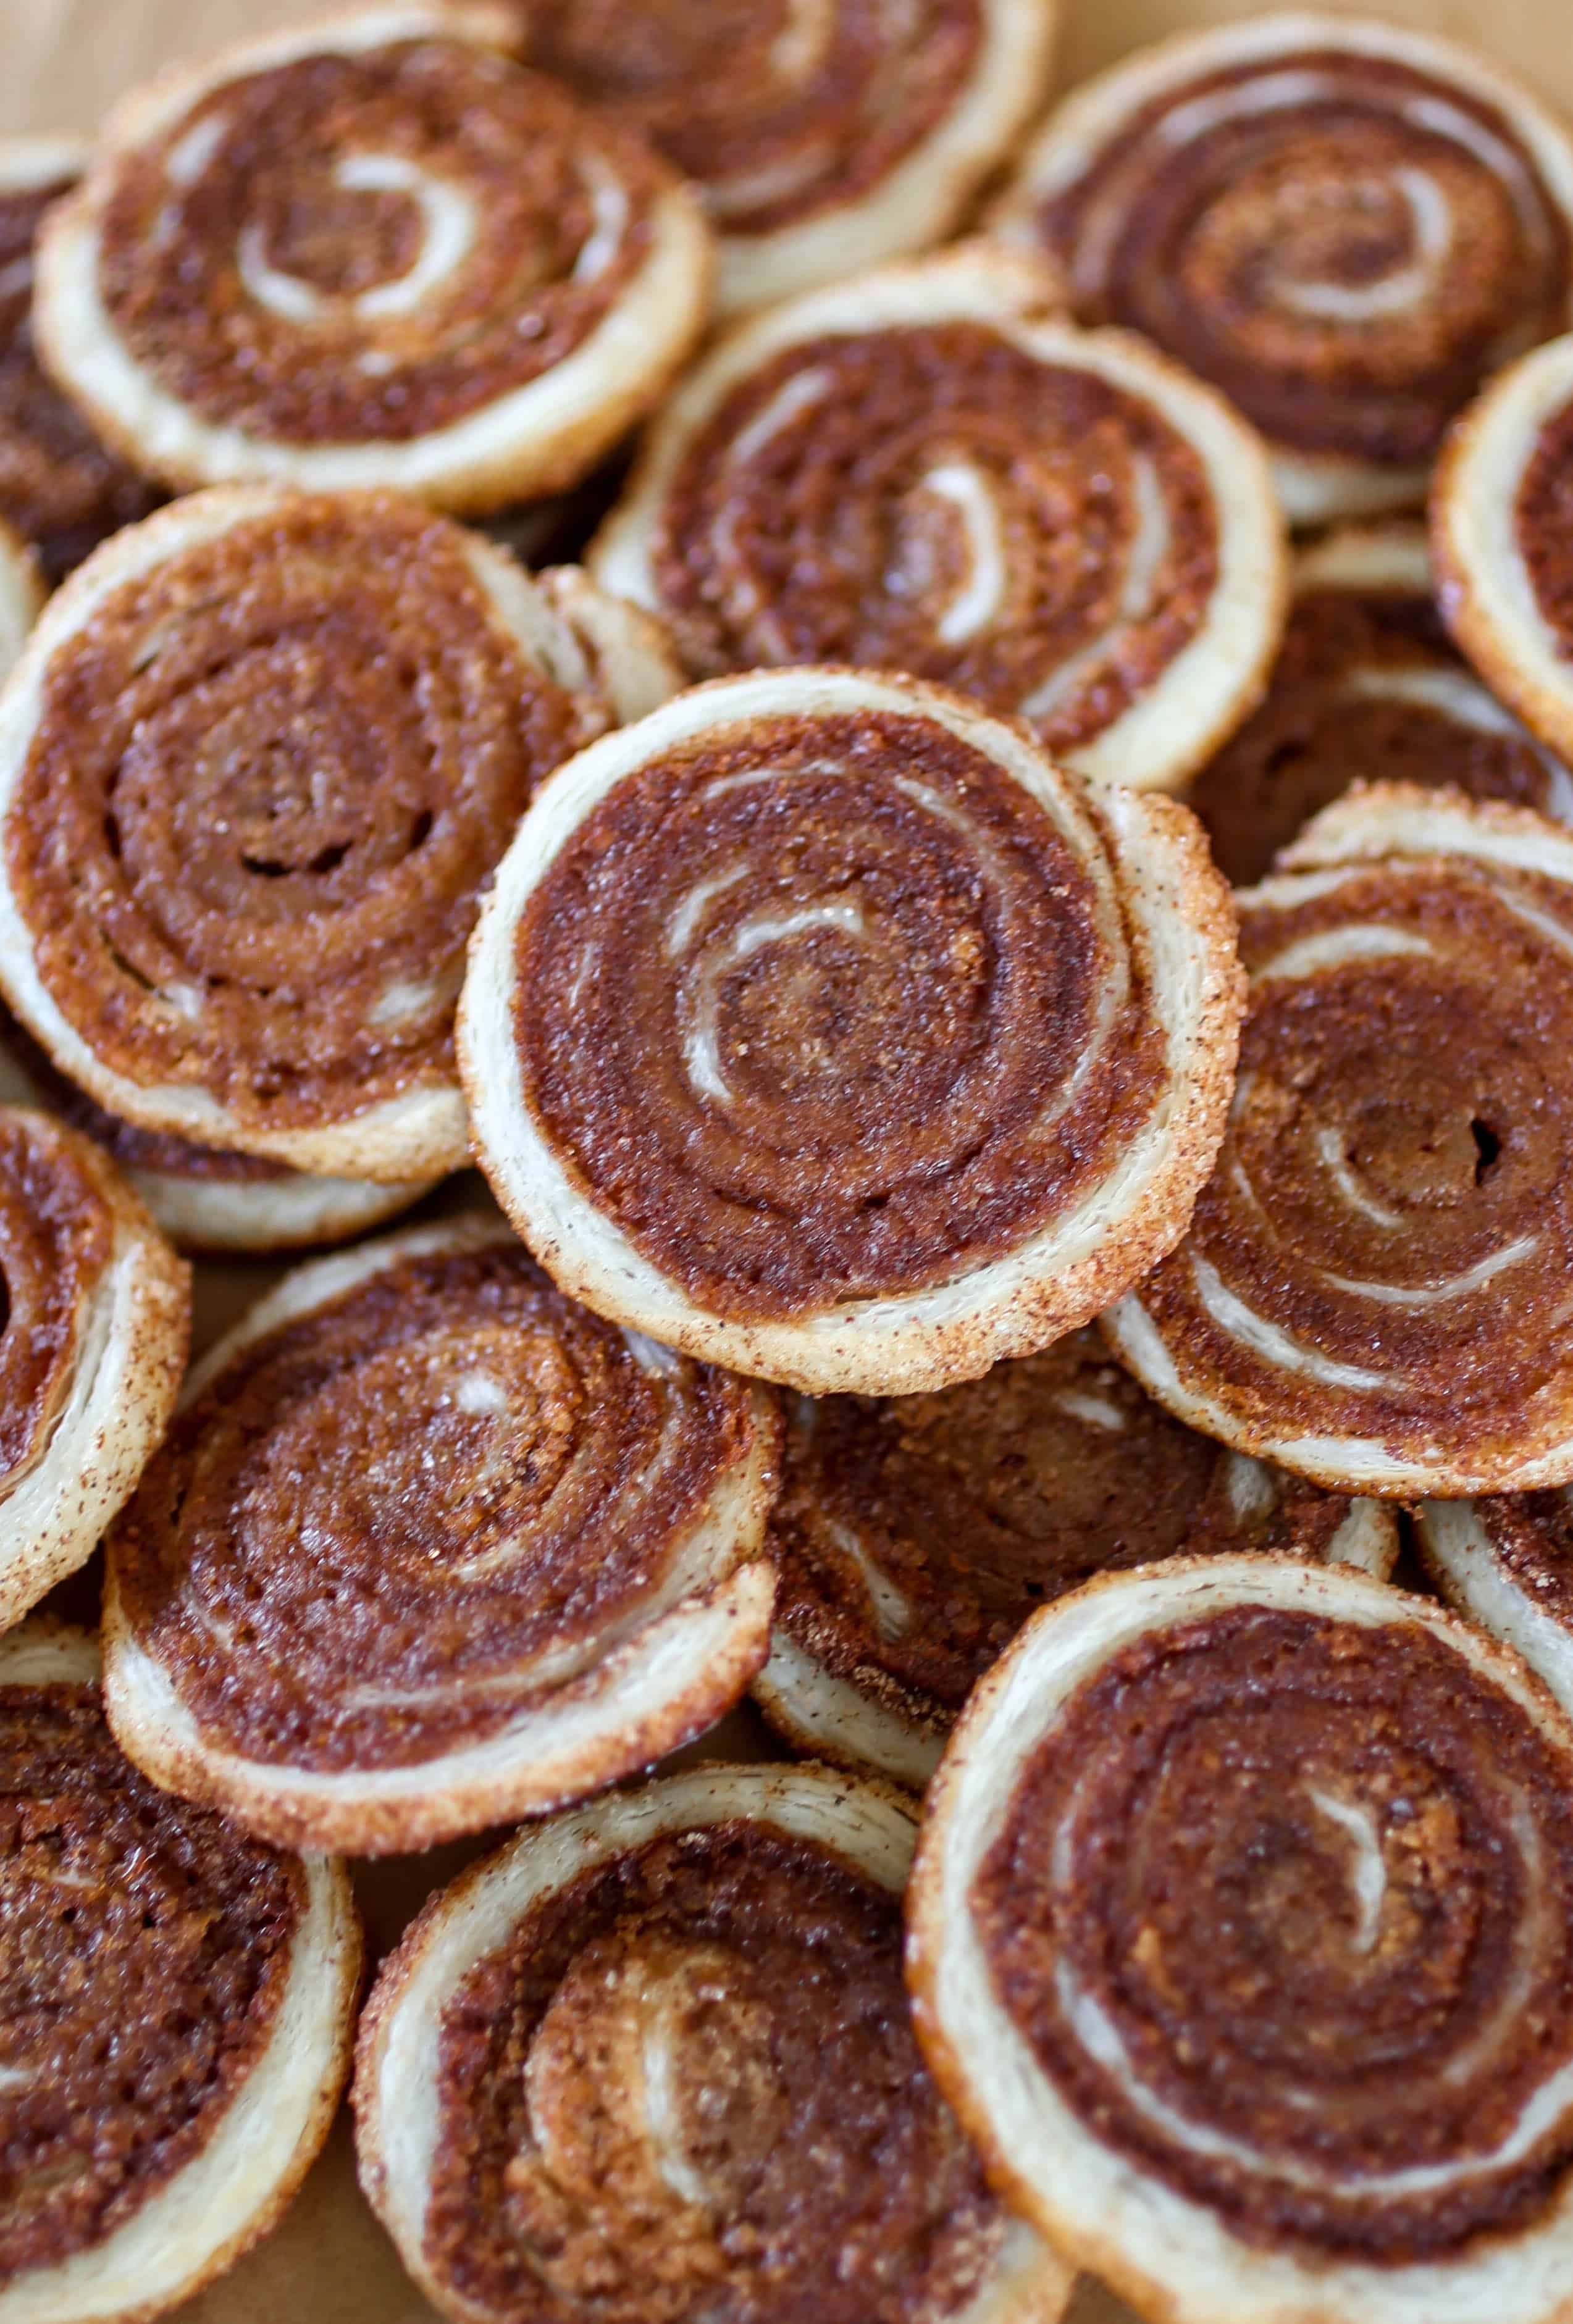 Cinnamon Sugar Puff Pastry Cookies - Puff pastry dough is rolled up in a sweet and spicy coating of cinnamon sugar, sliced into cookies and baked up to golden perfection!